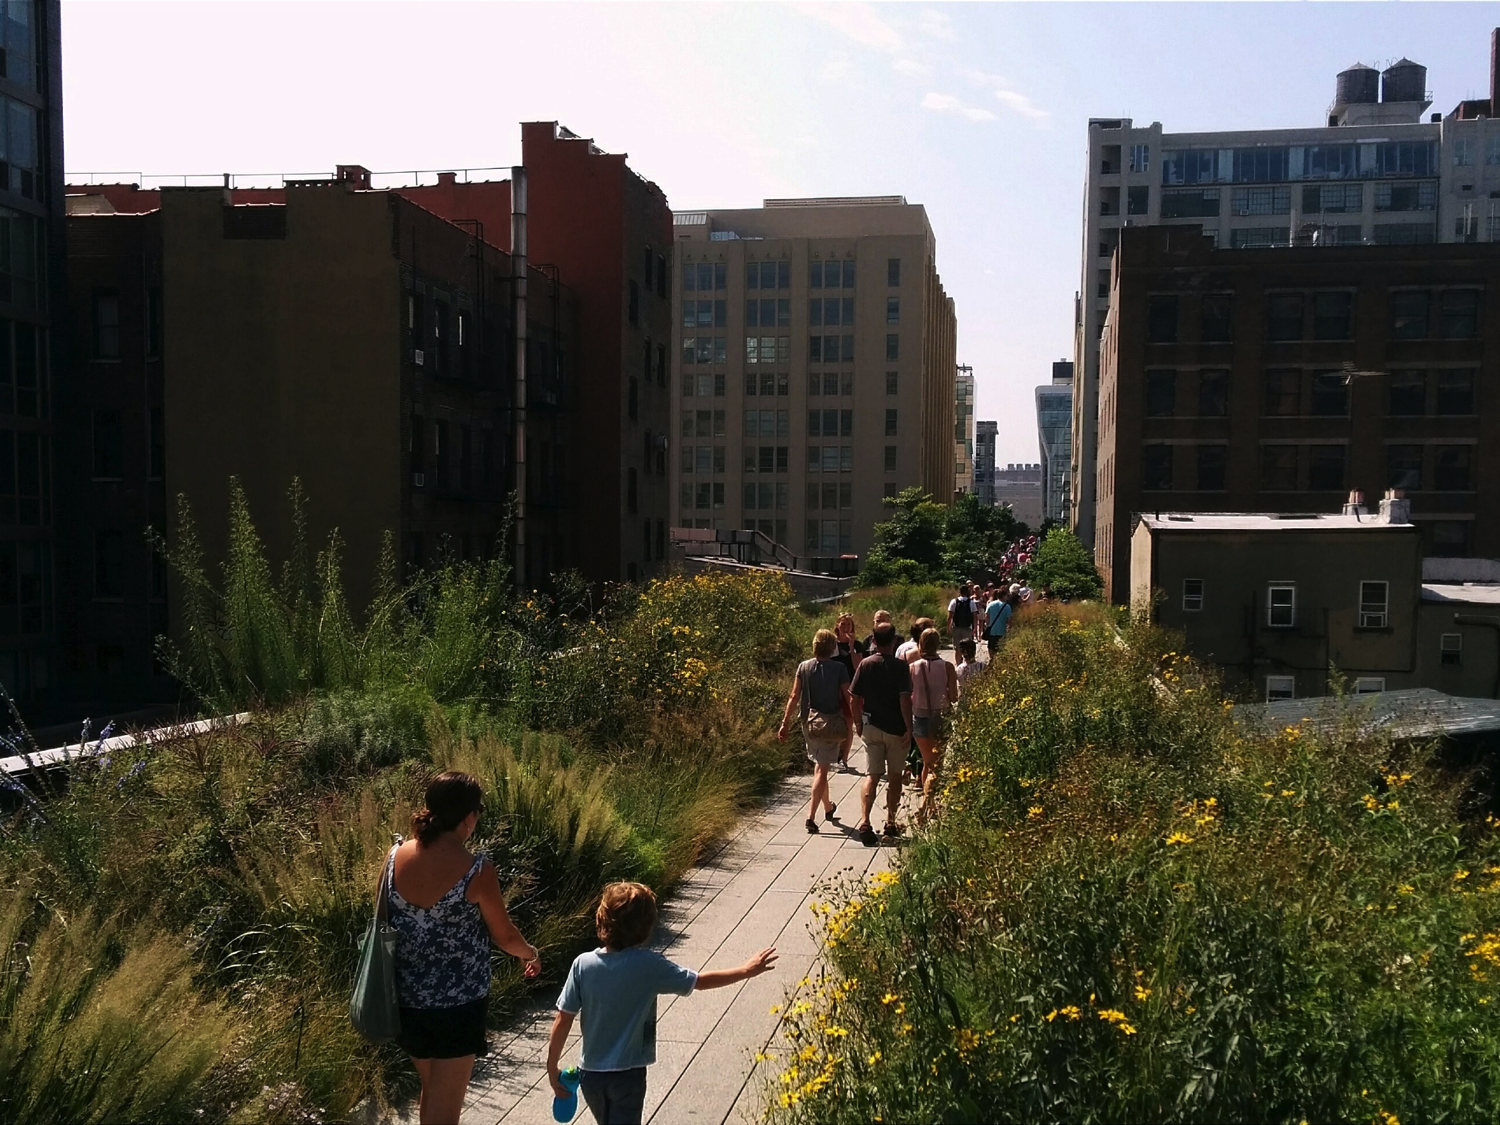 The High Line, New York City by Mark Skarratts via Flickr (CC BY 2.0)